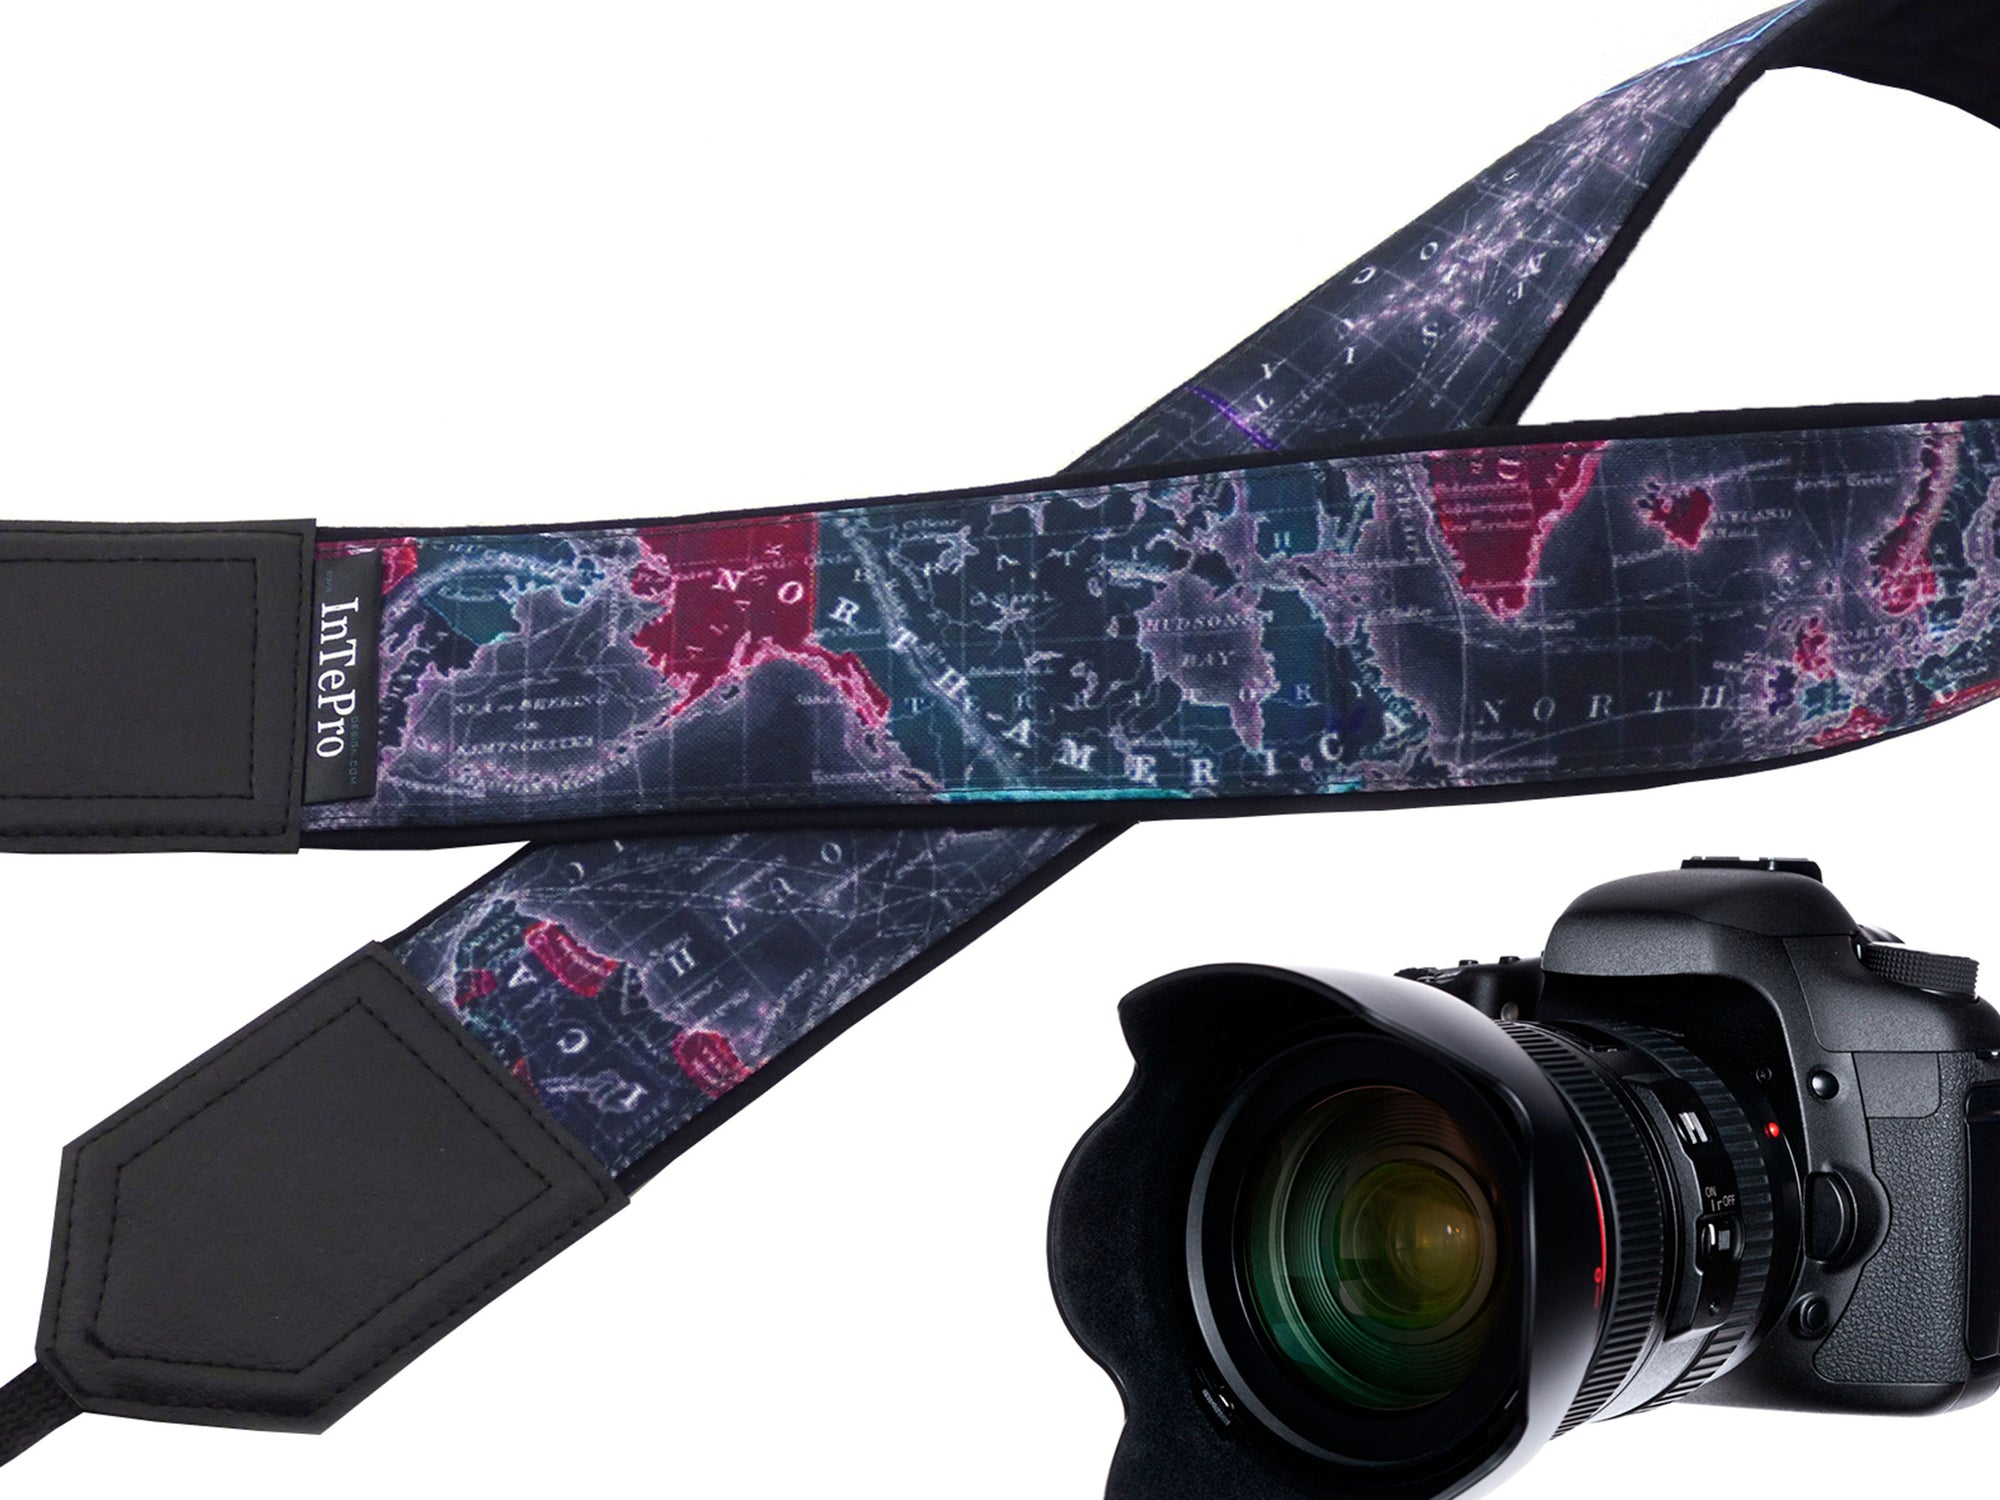 InTePro World map camera strap with personalization and pocket. Camera Strap with Embroidery for DSLR, Mirrorless and other cameras.